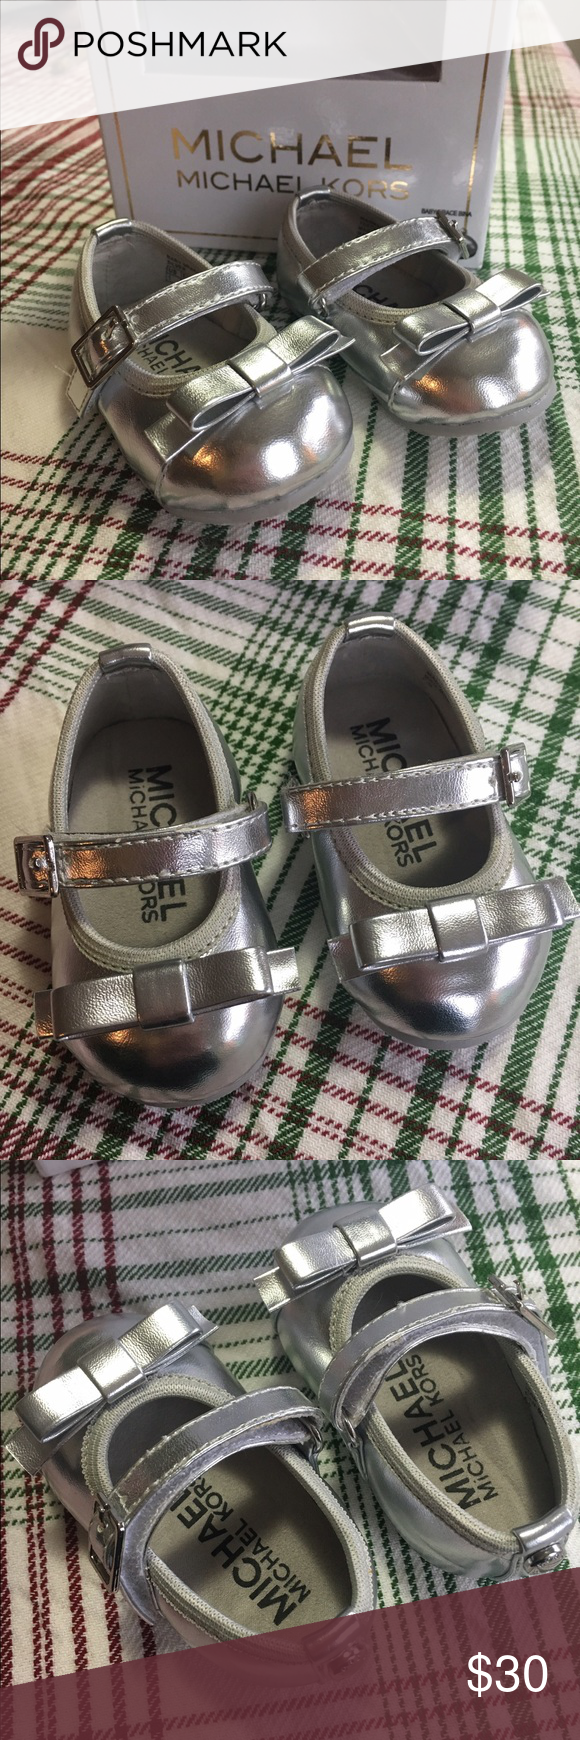 Infants Michael Kors Baby Grace Bina size 1 Infant  Signature MK metallic silver shoe like brand new. My daughter wore these once to take pictures with Santa. Size 1 (0-12 months). KORS Michael Kors Shoes Dress Shoes